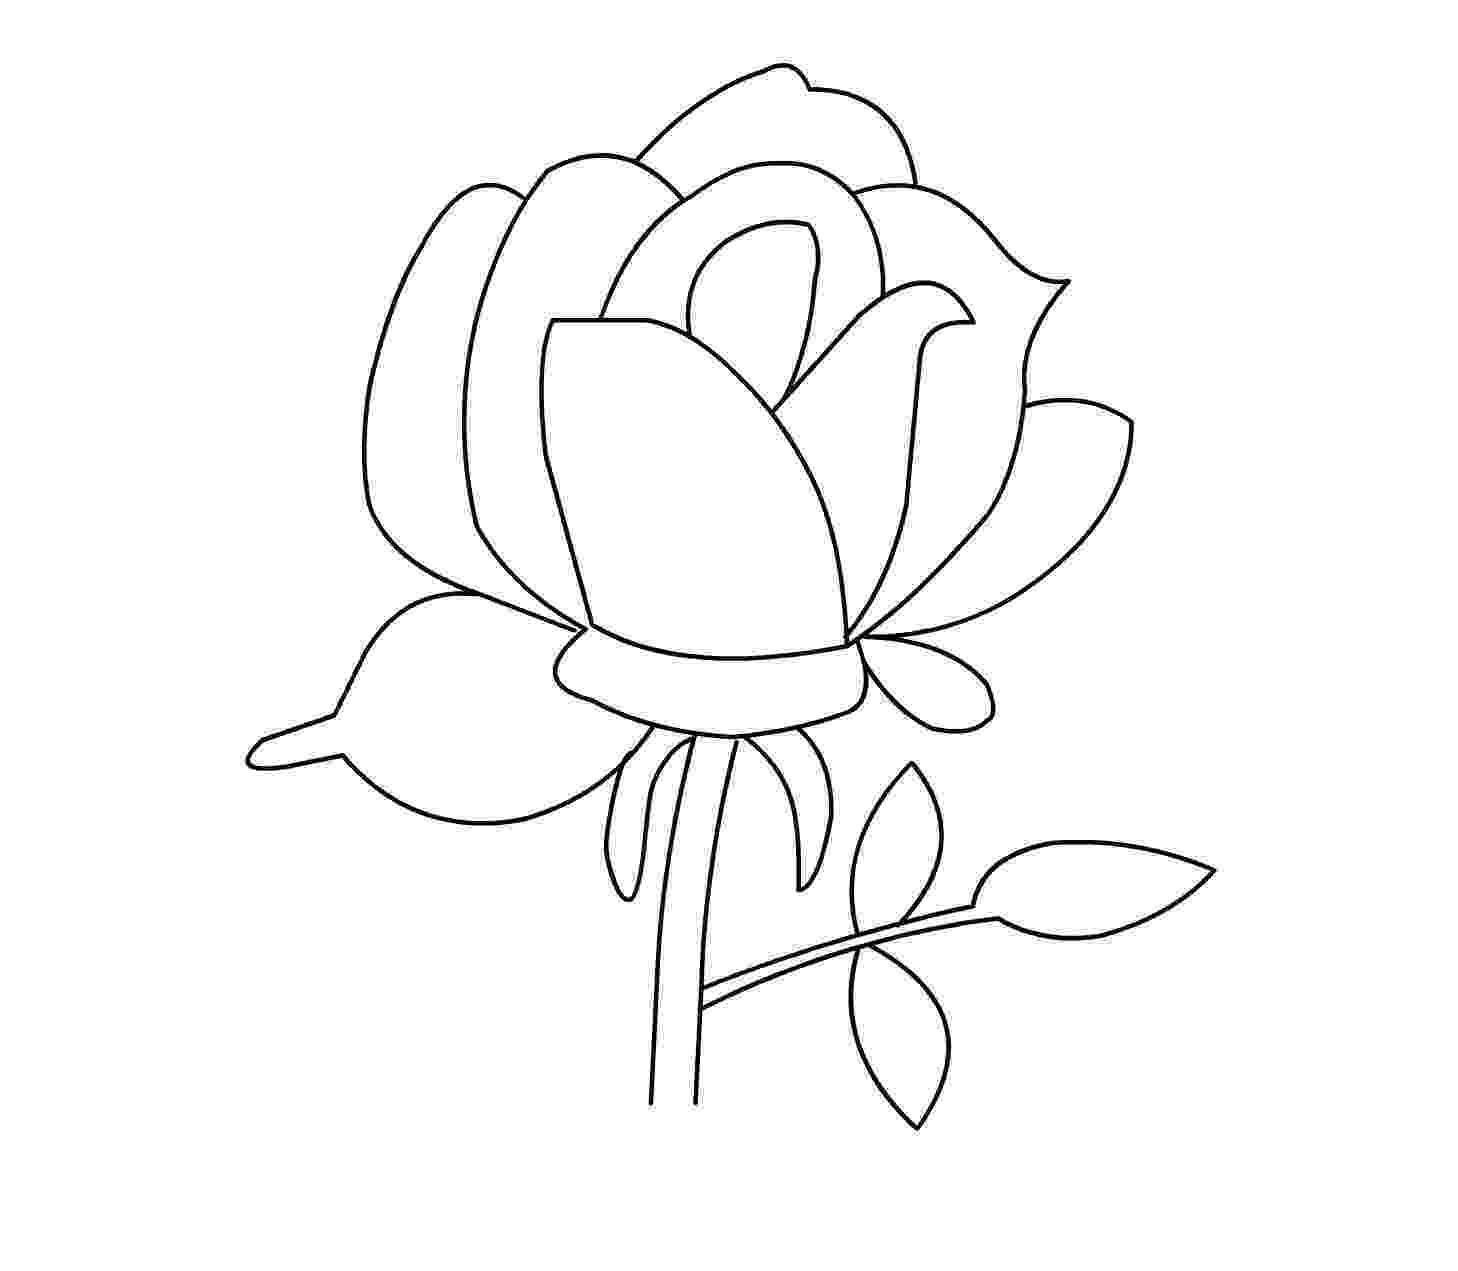 pics of roses to color flowers letmecolor color to pics of roses